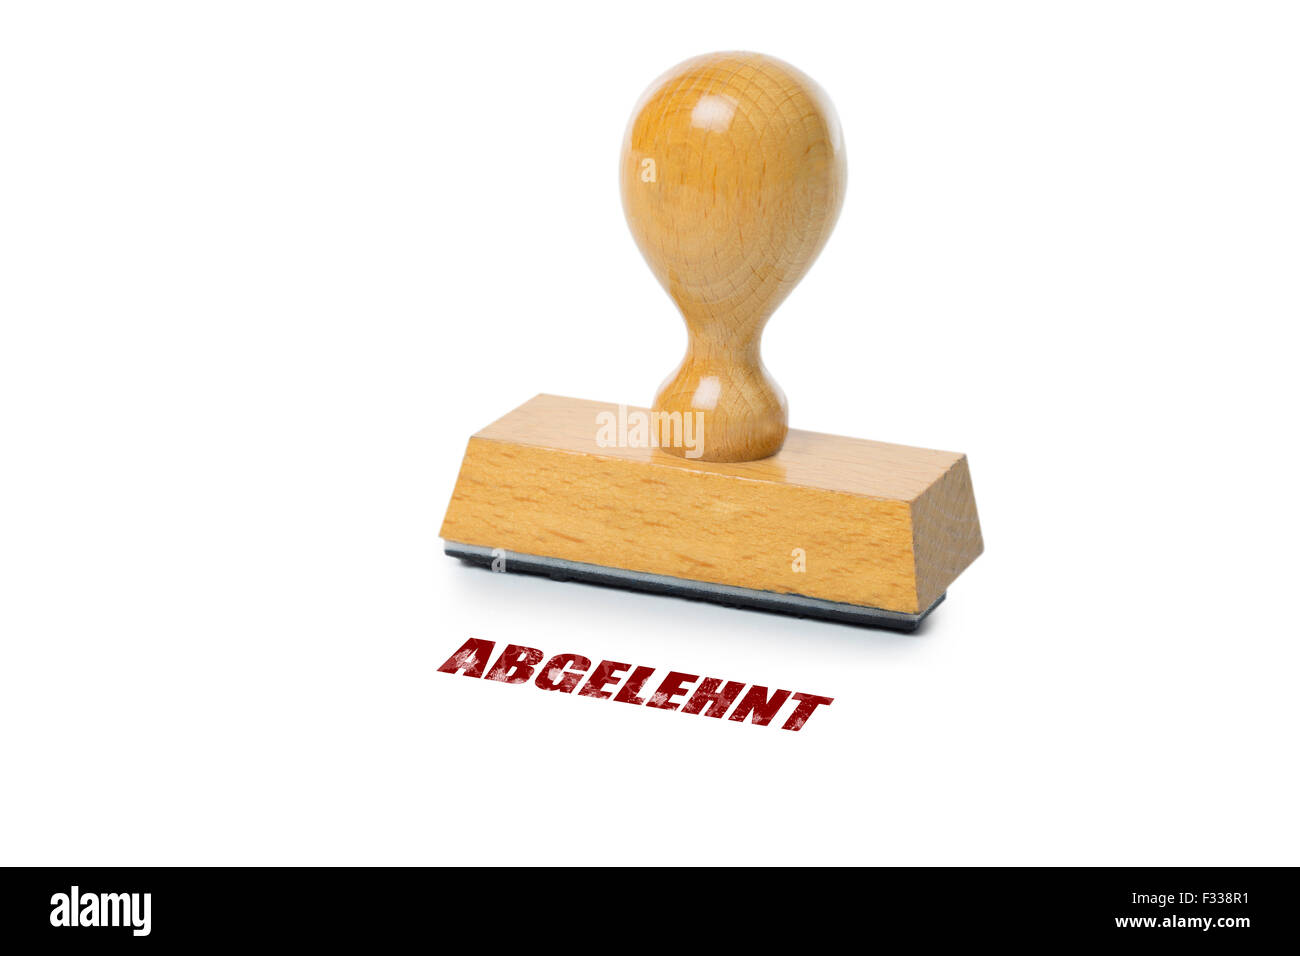 Abgelehnt (German: denied) printed in red ink with wooden Rubber stamp isolated on white background - Stock Image